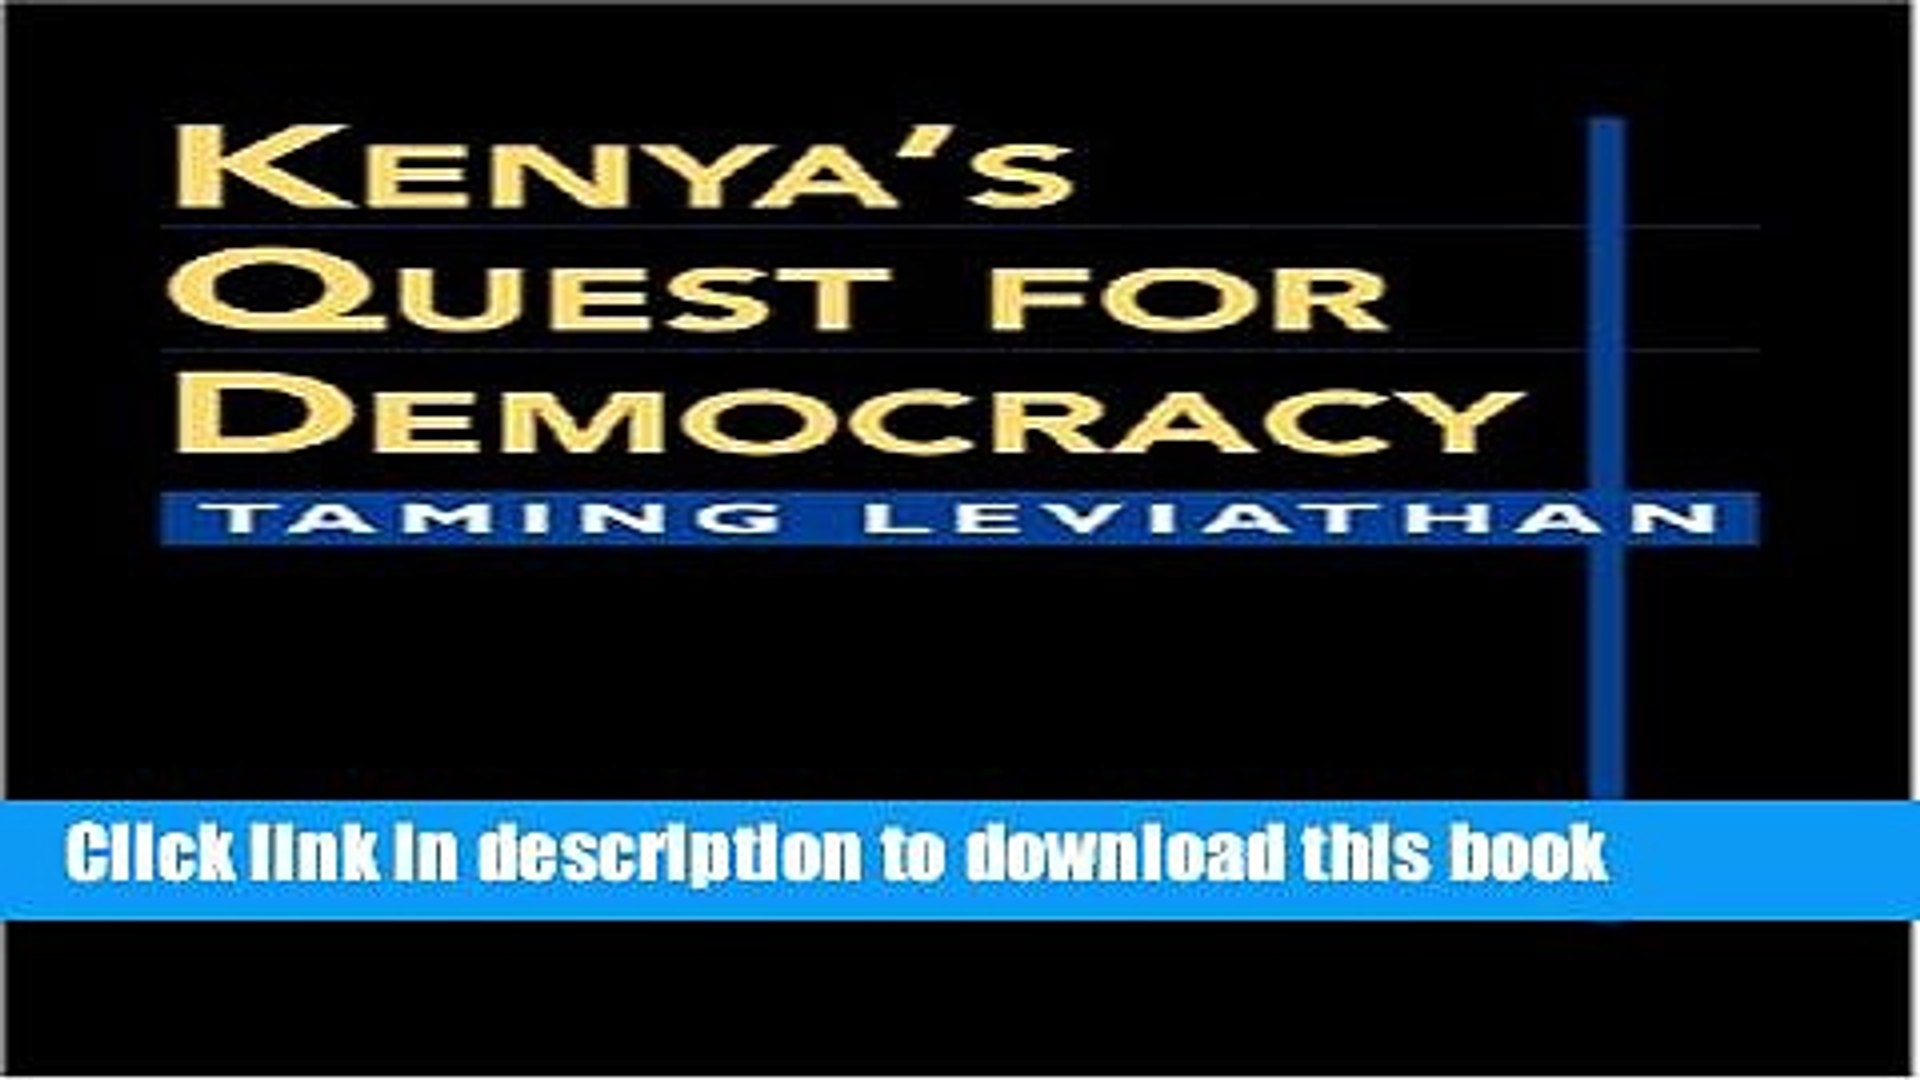 Download Kenya s Quest For Democracy: Taming Leviathan (Challenge and Change in African Politics)